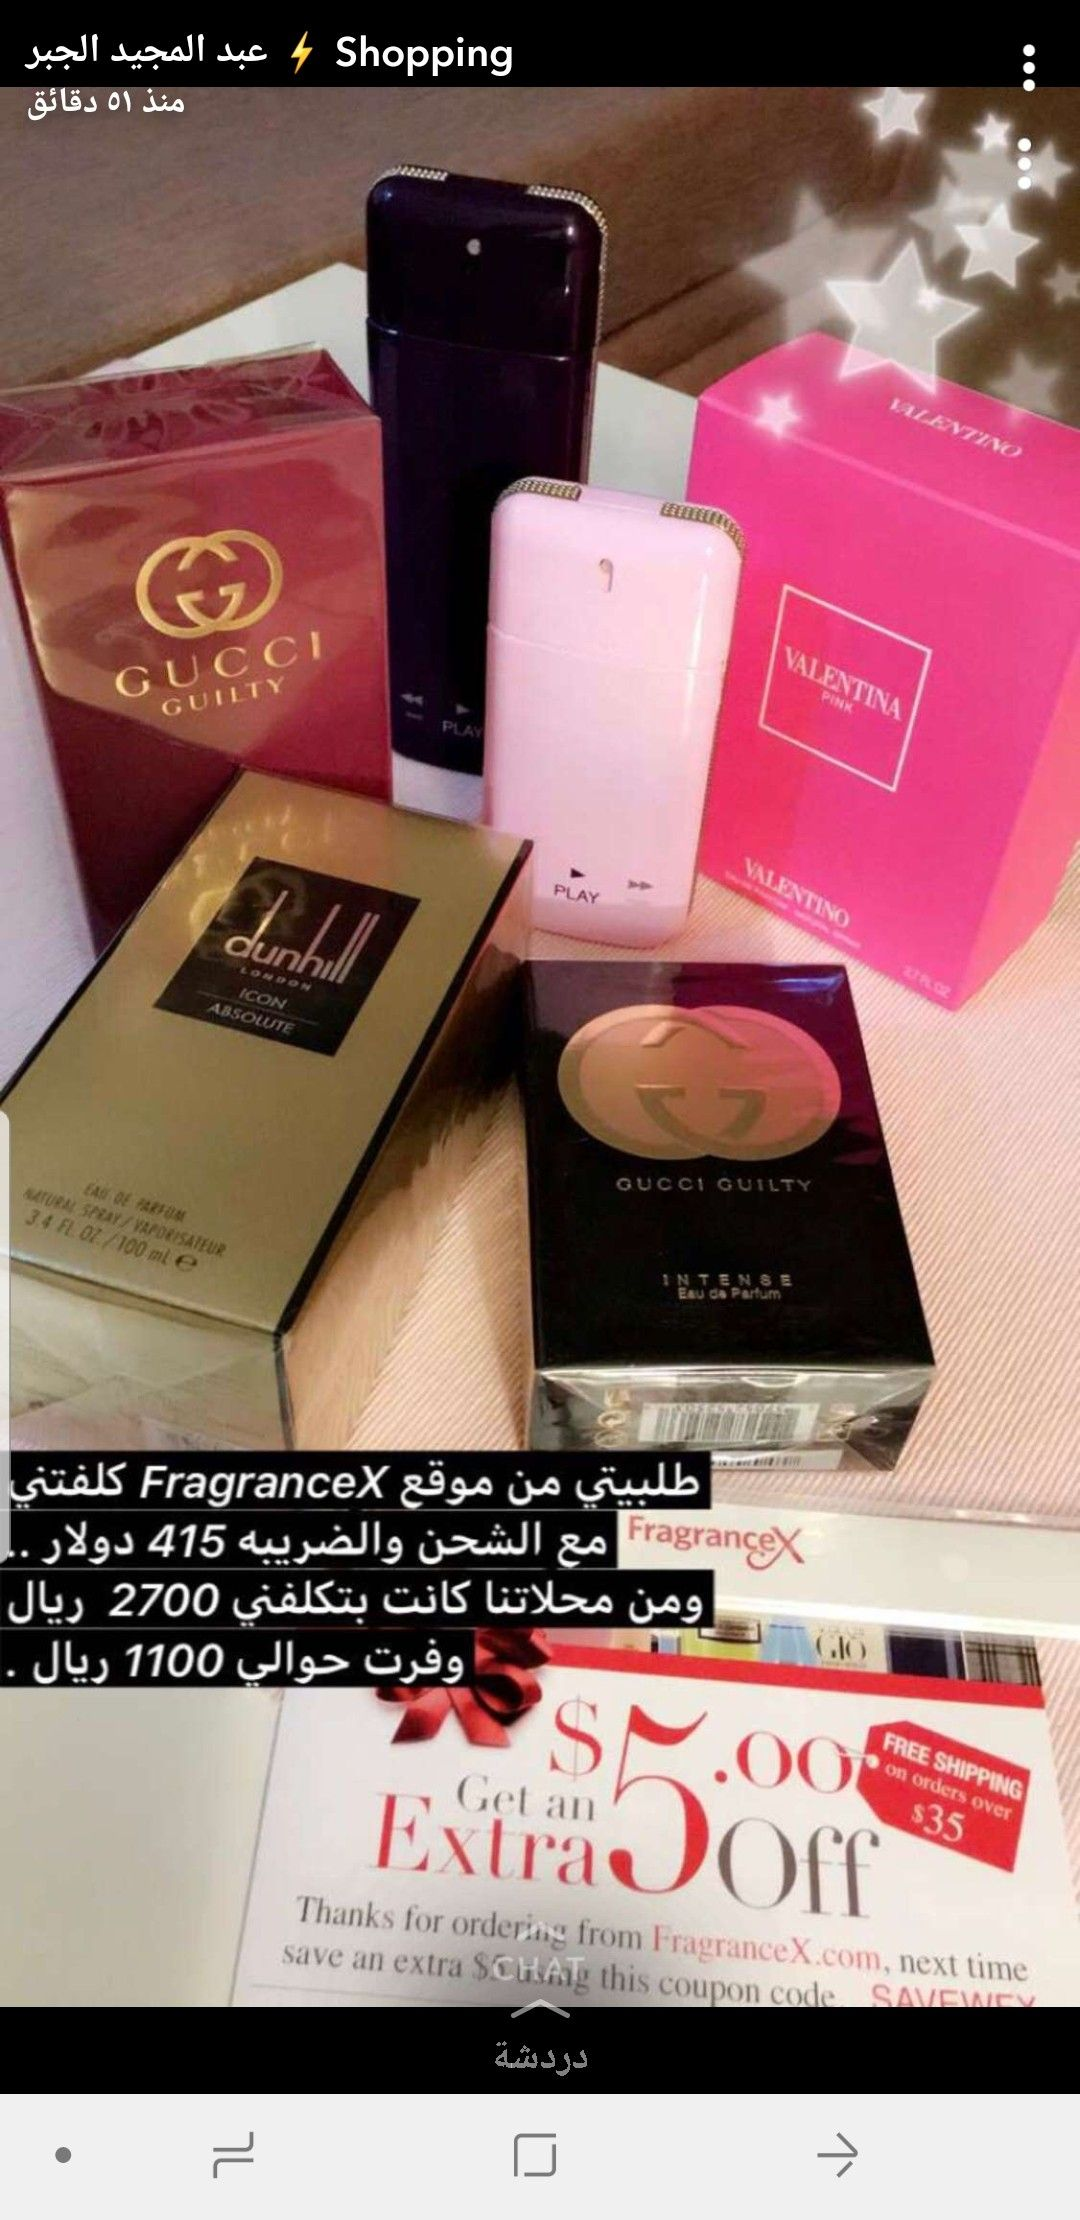 Pin by nonosaad4 on عطور وبخور وشموع Beauty makeup